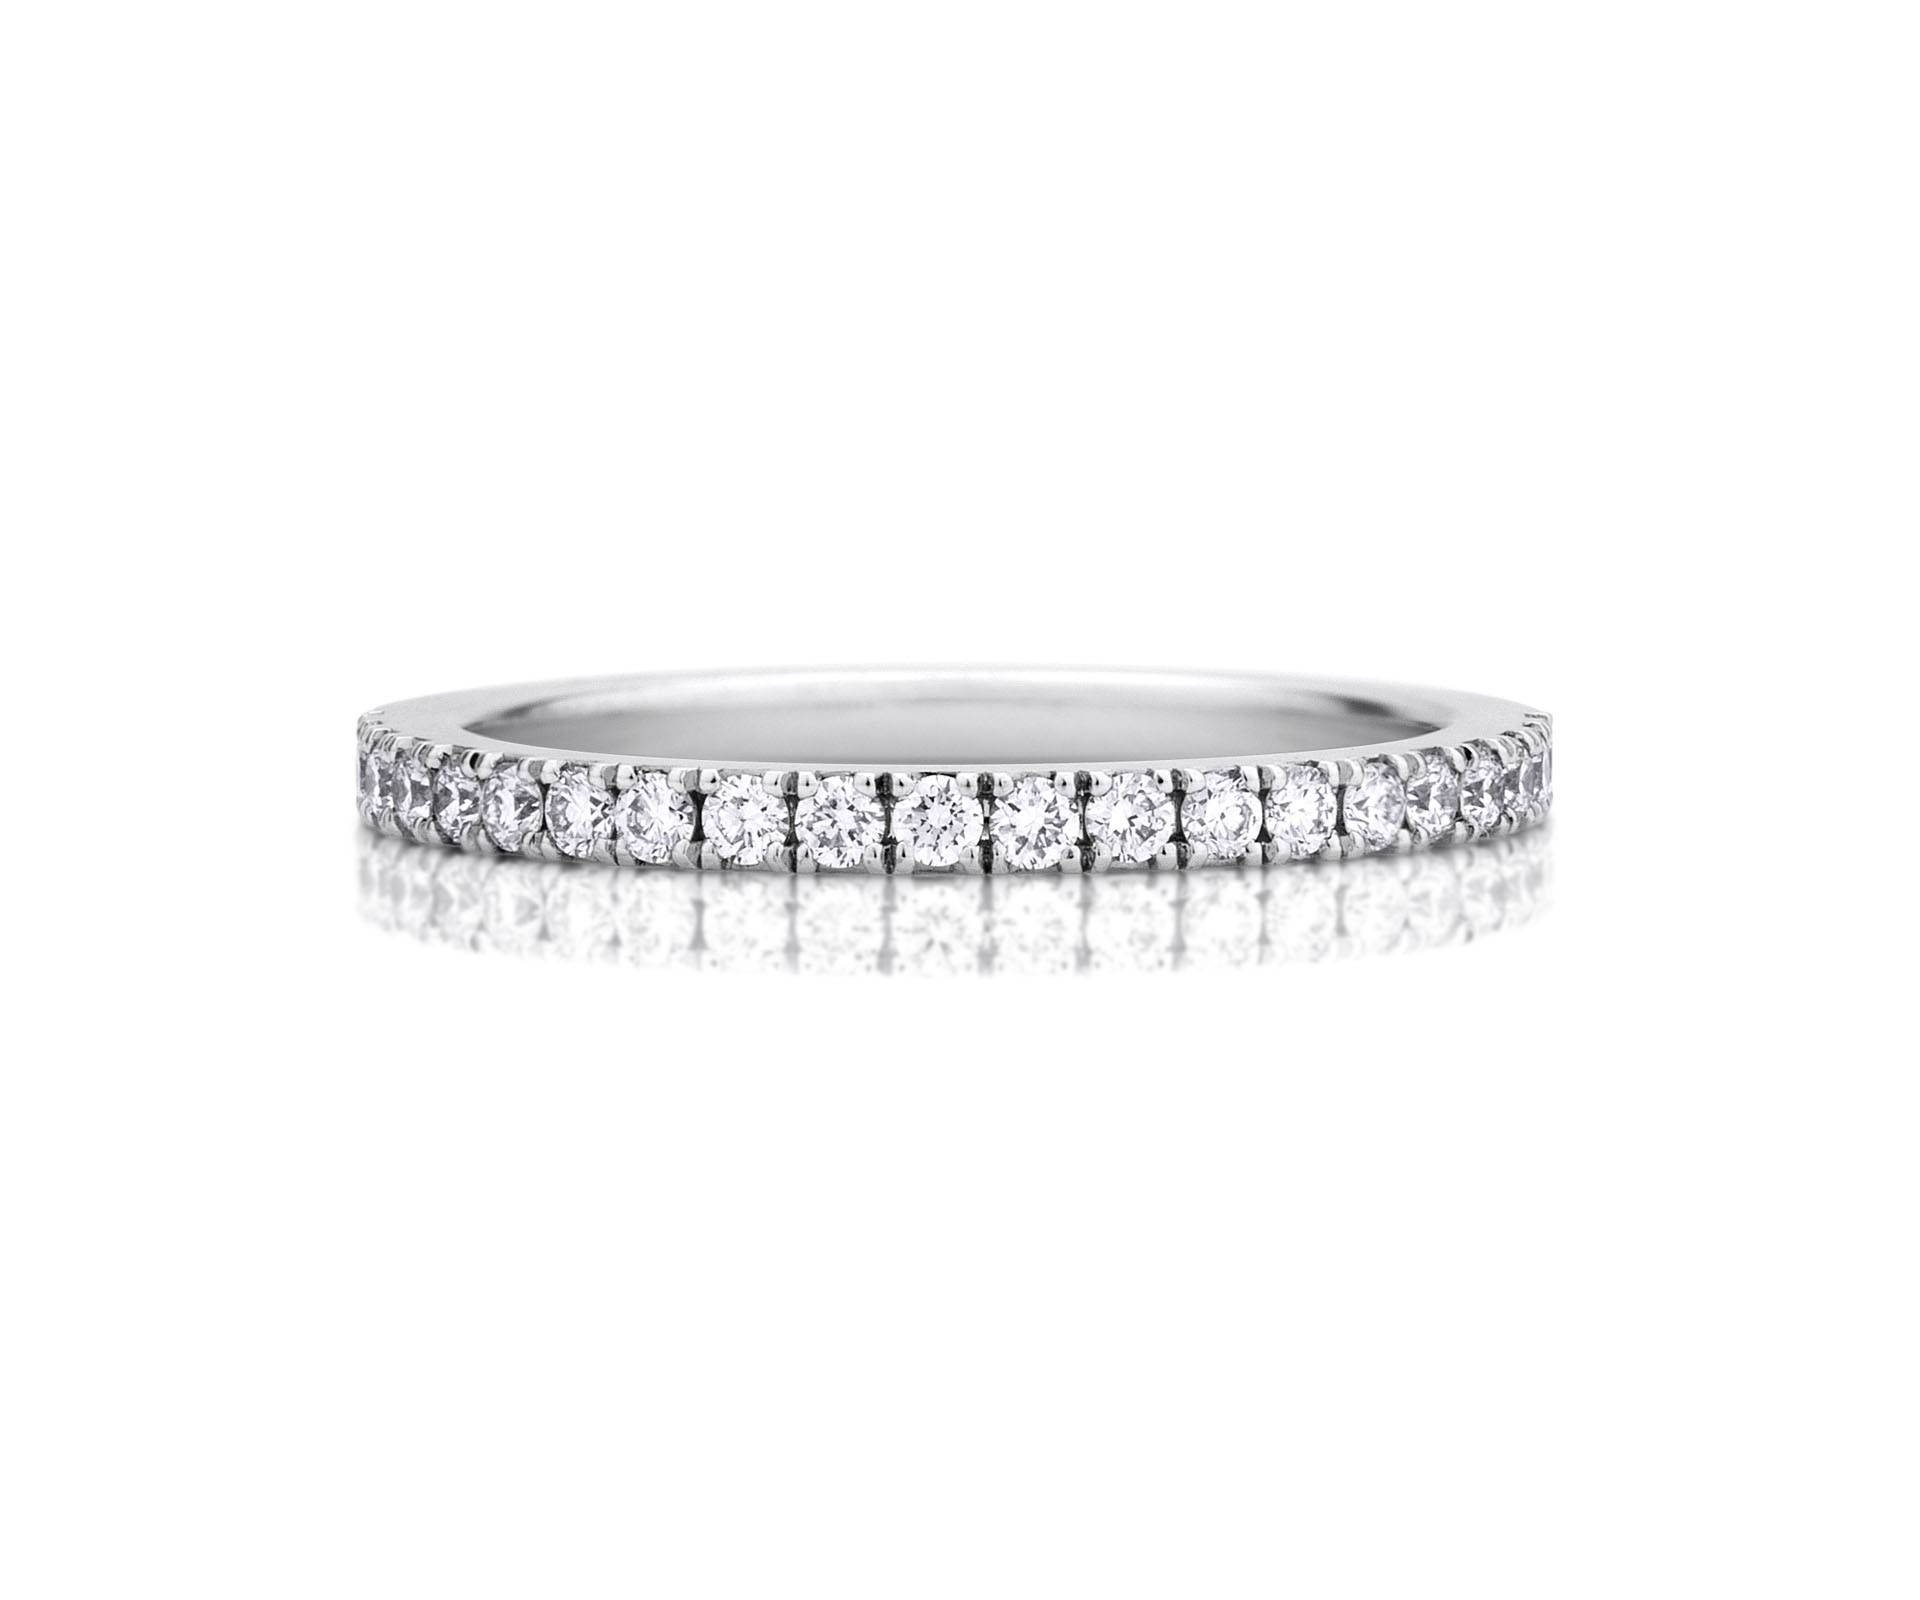 Diamond Wedding Rings & Bands | De Beers Within Diamond Band Wedding Rings (View 4 of 15)